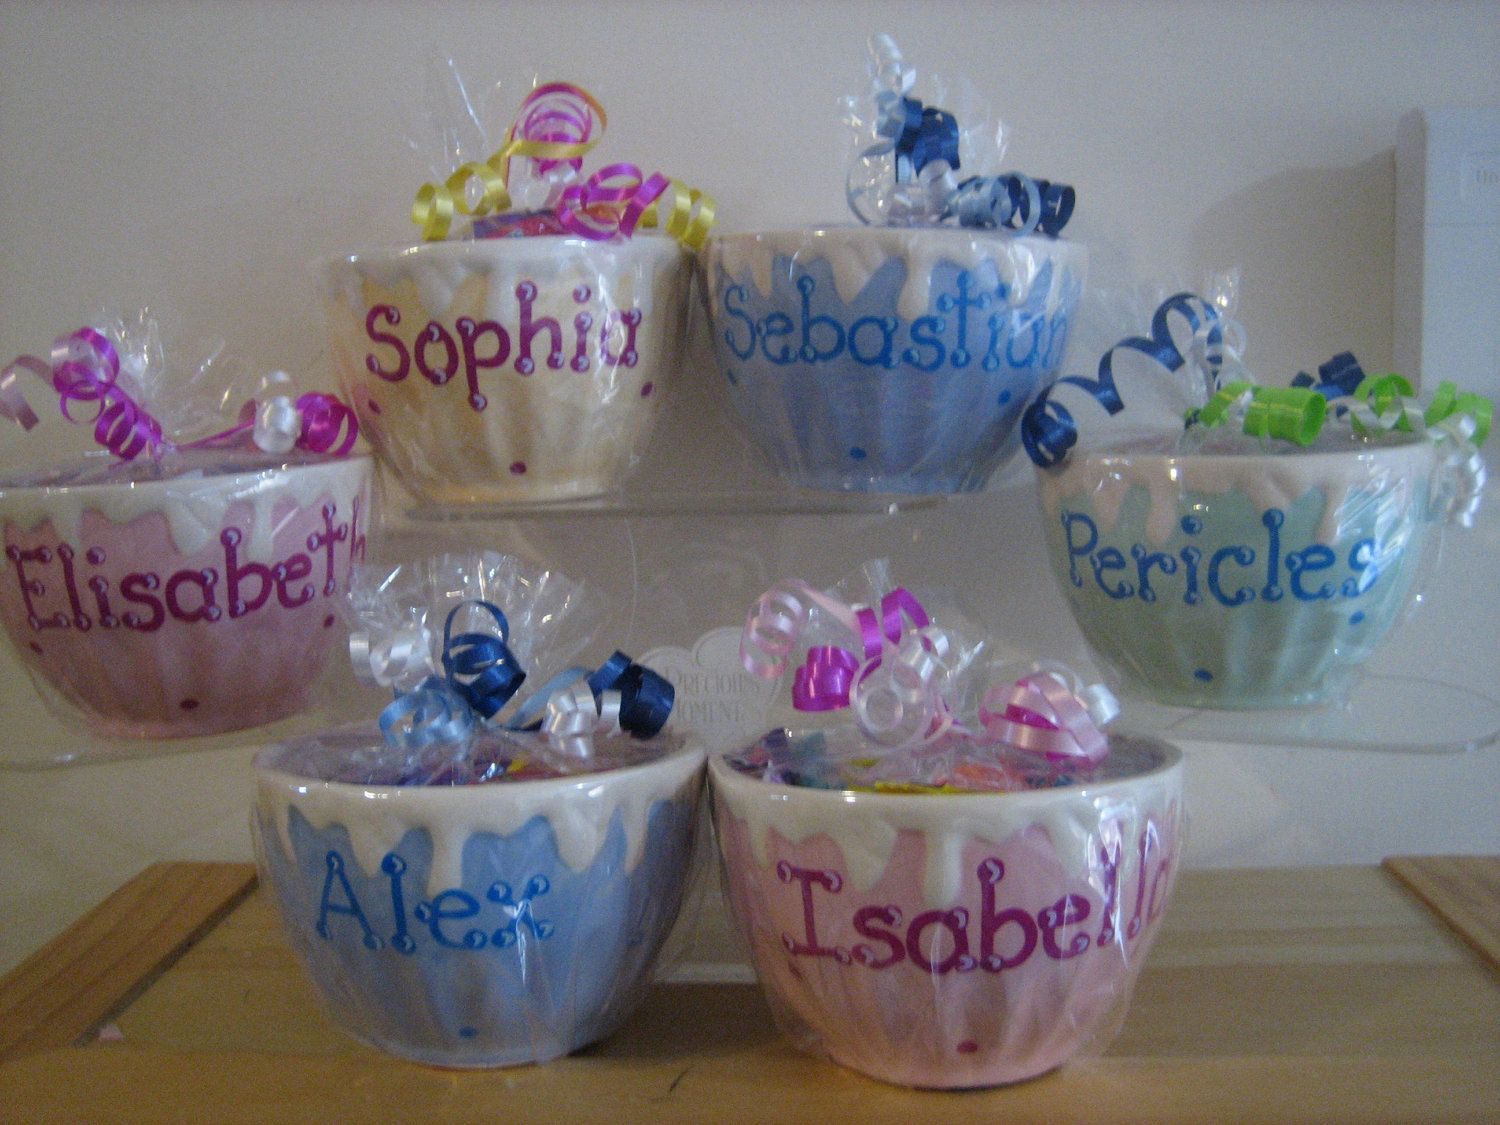 35 Personalized Ceramic Ice Cream Bowl Cup Kids Party Favors Birthdays,baby  Showers,Sweet 16s, Communions, Christenings